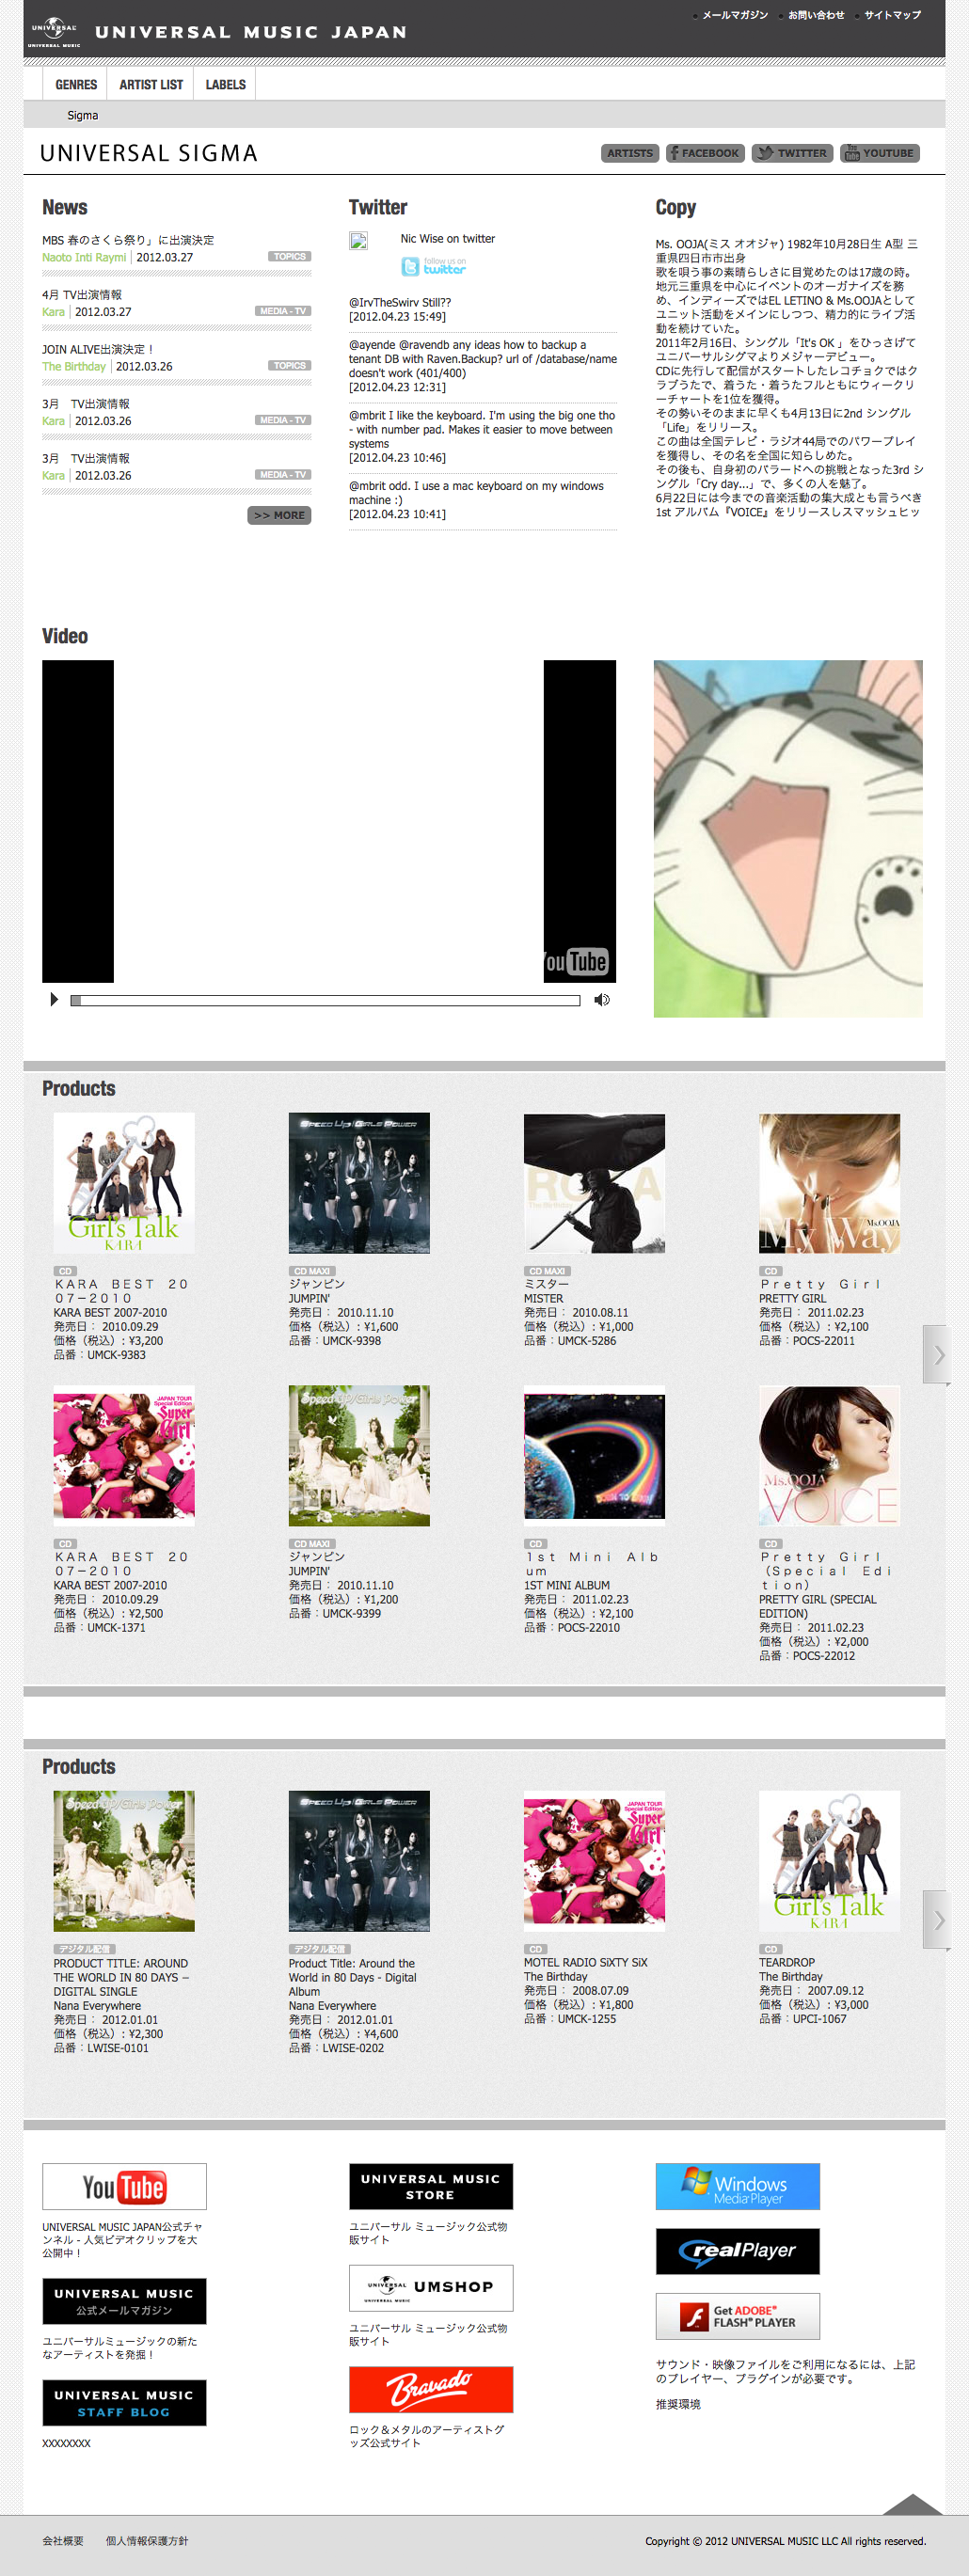 Universal Music Japan website screenshot